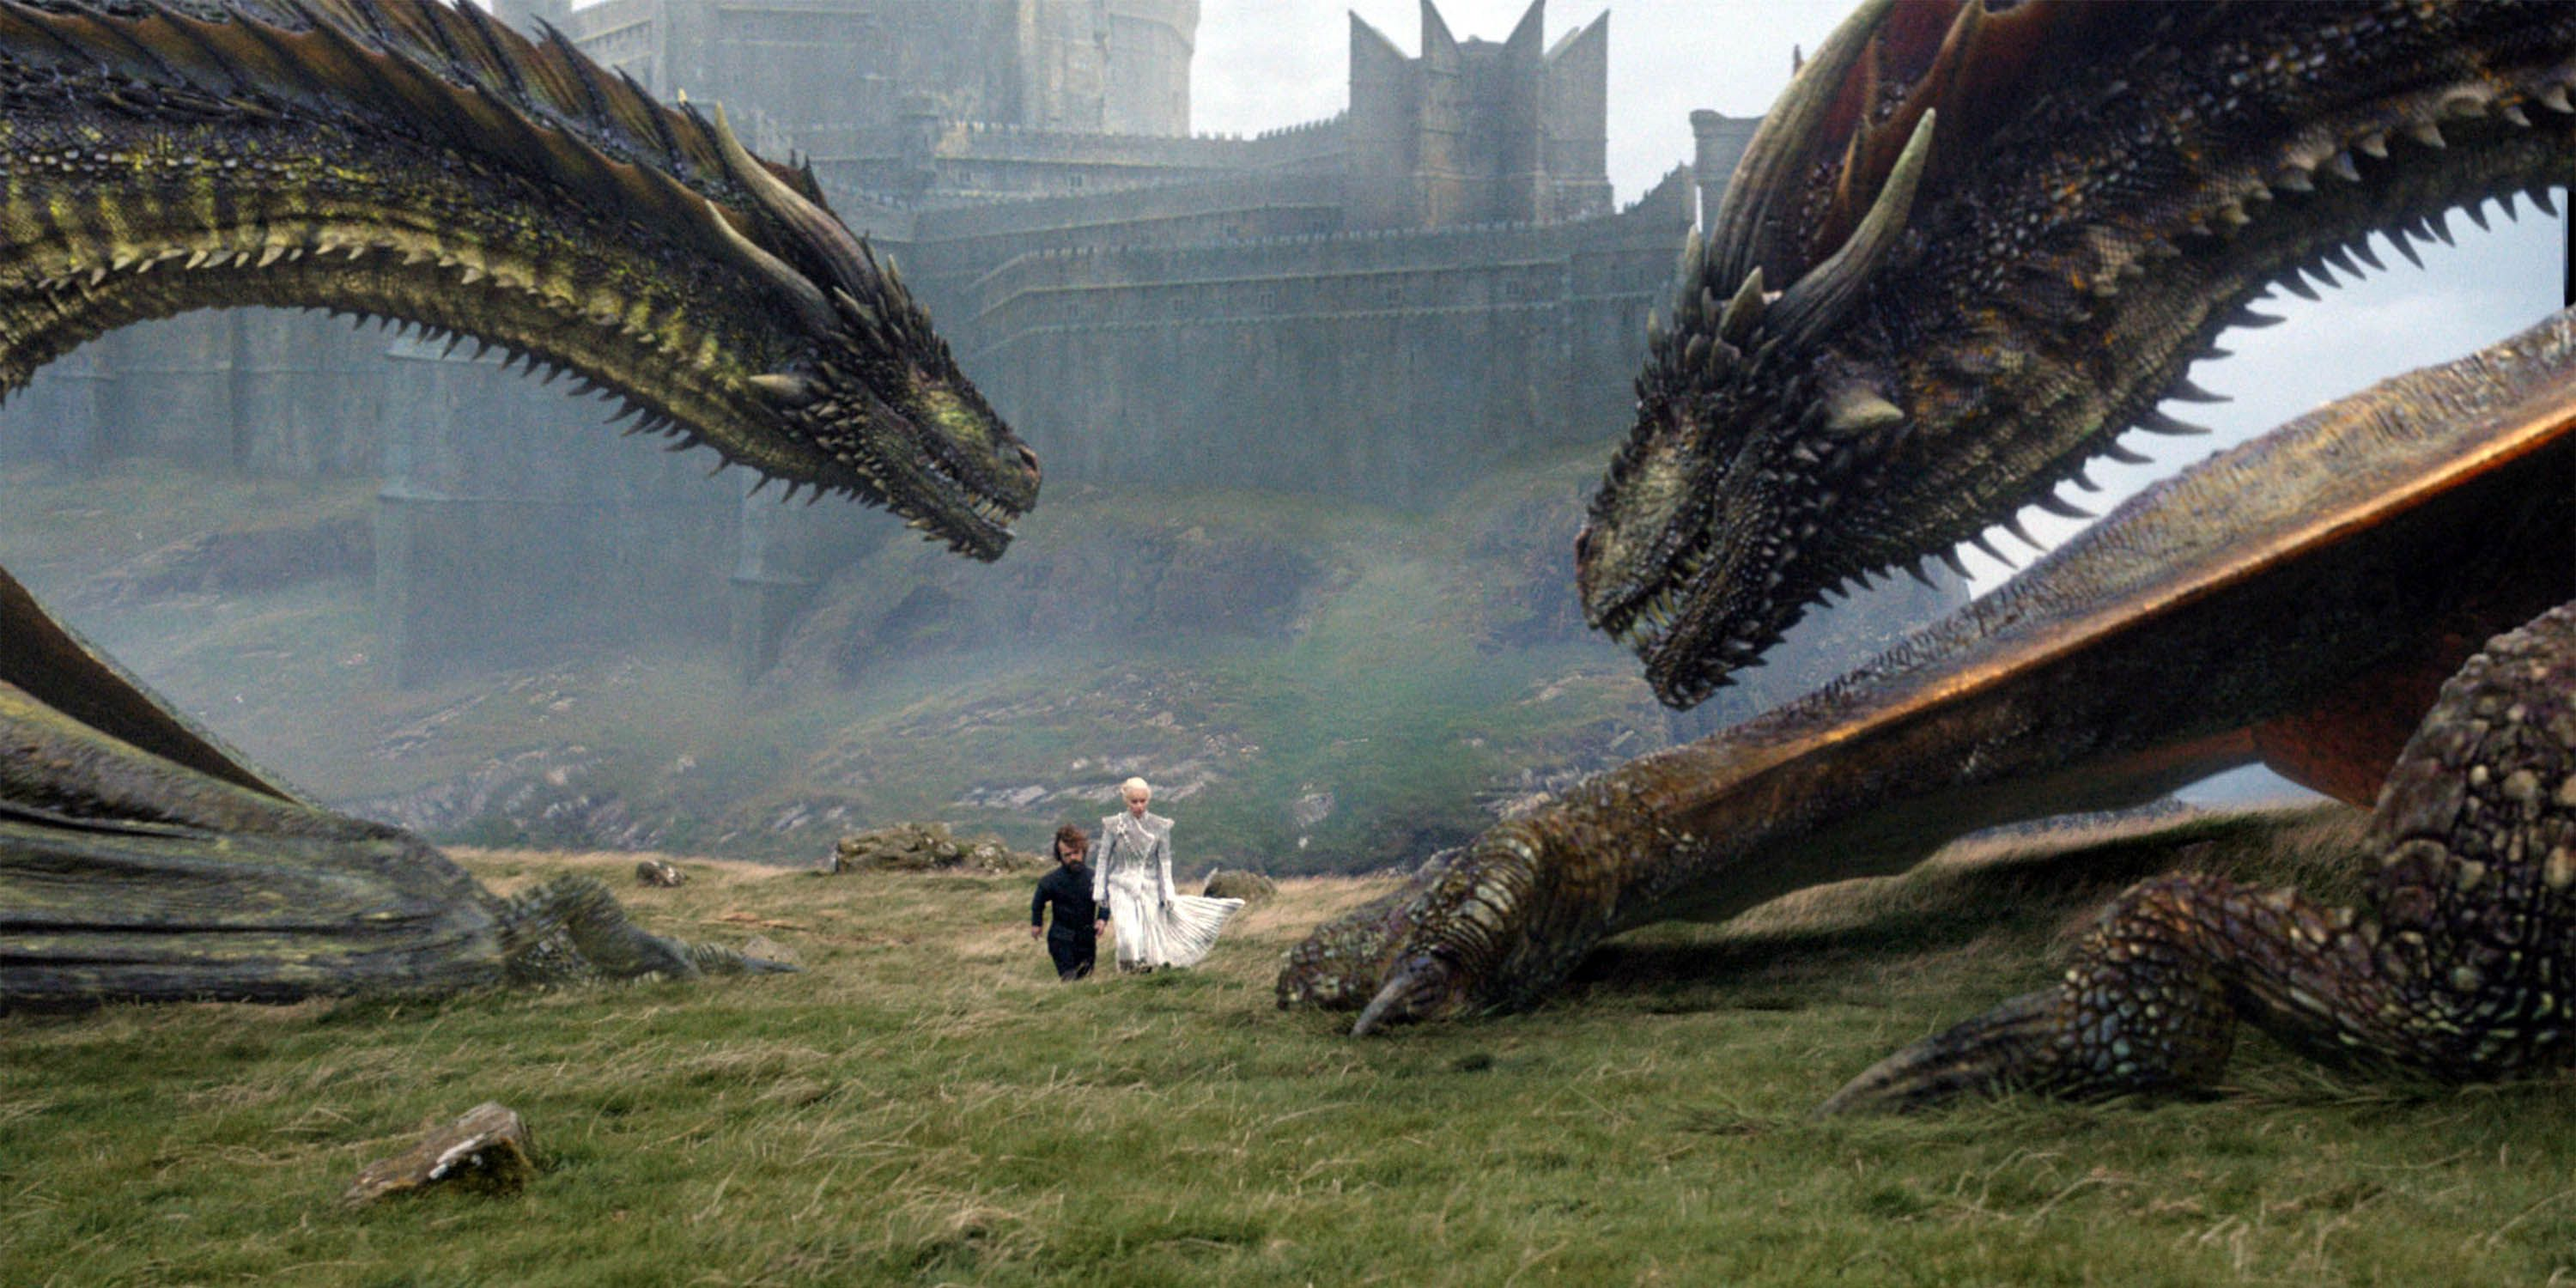 """Two """"Games of Thrones"""" characters walk across a field overlooked by dragons"""